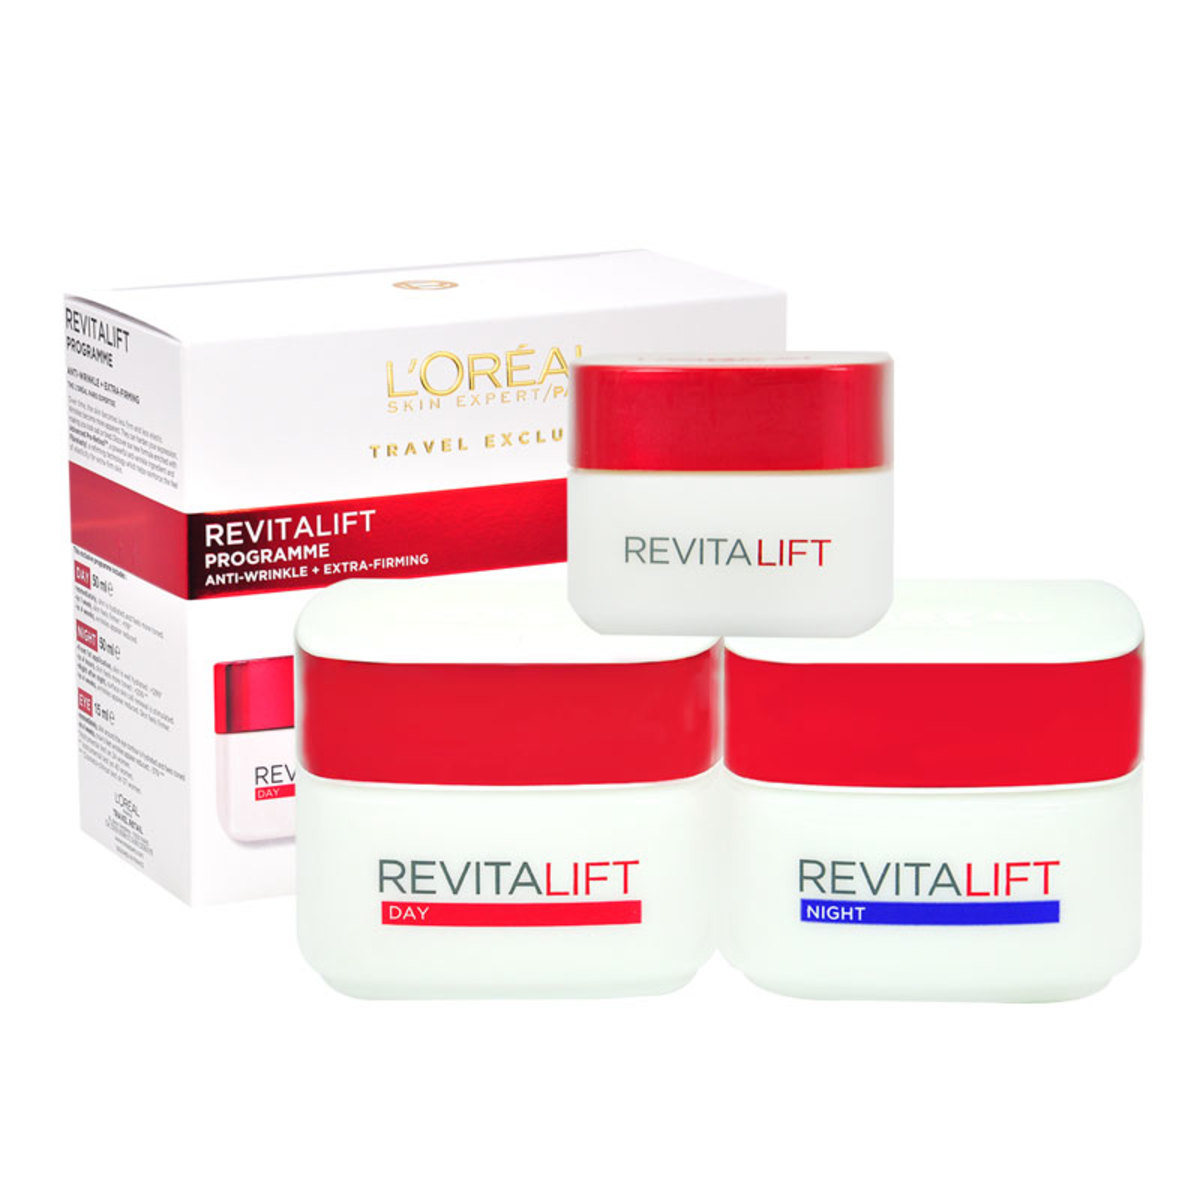 Revitalift Programme Travel Exclusive - [Parallel Import Product]